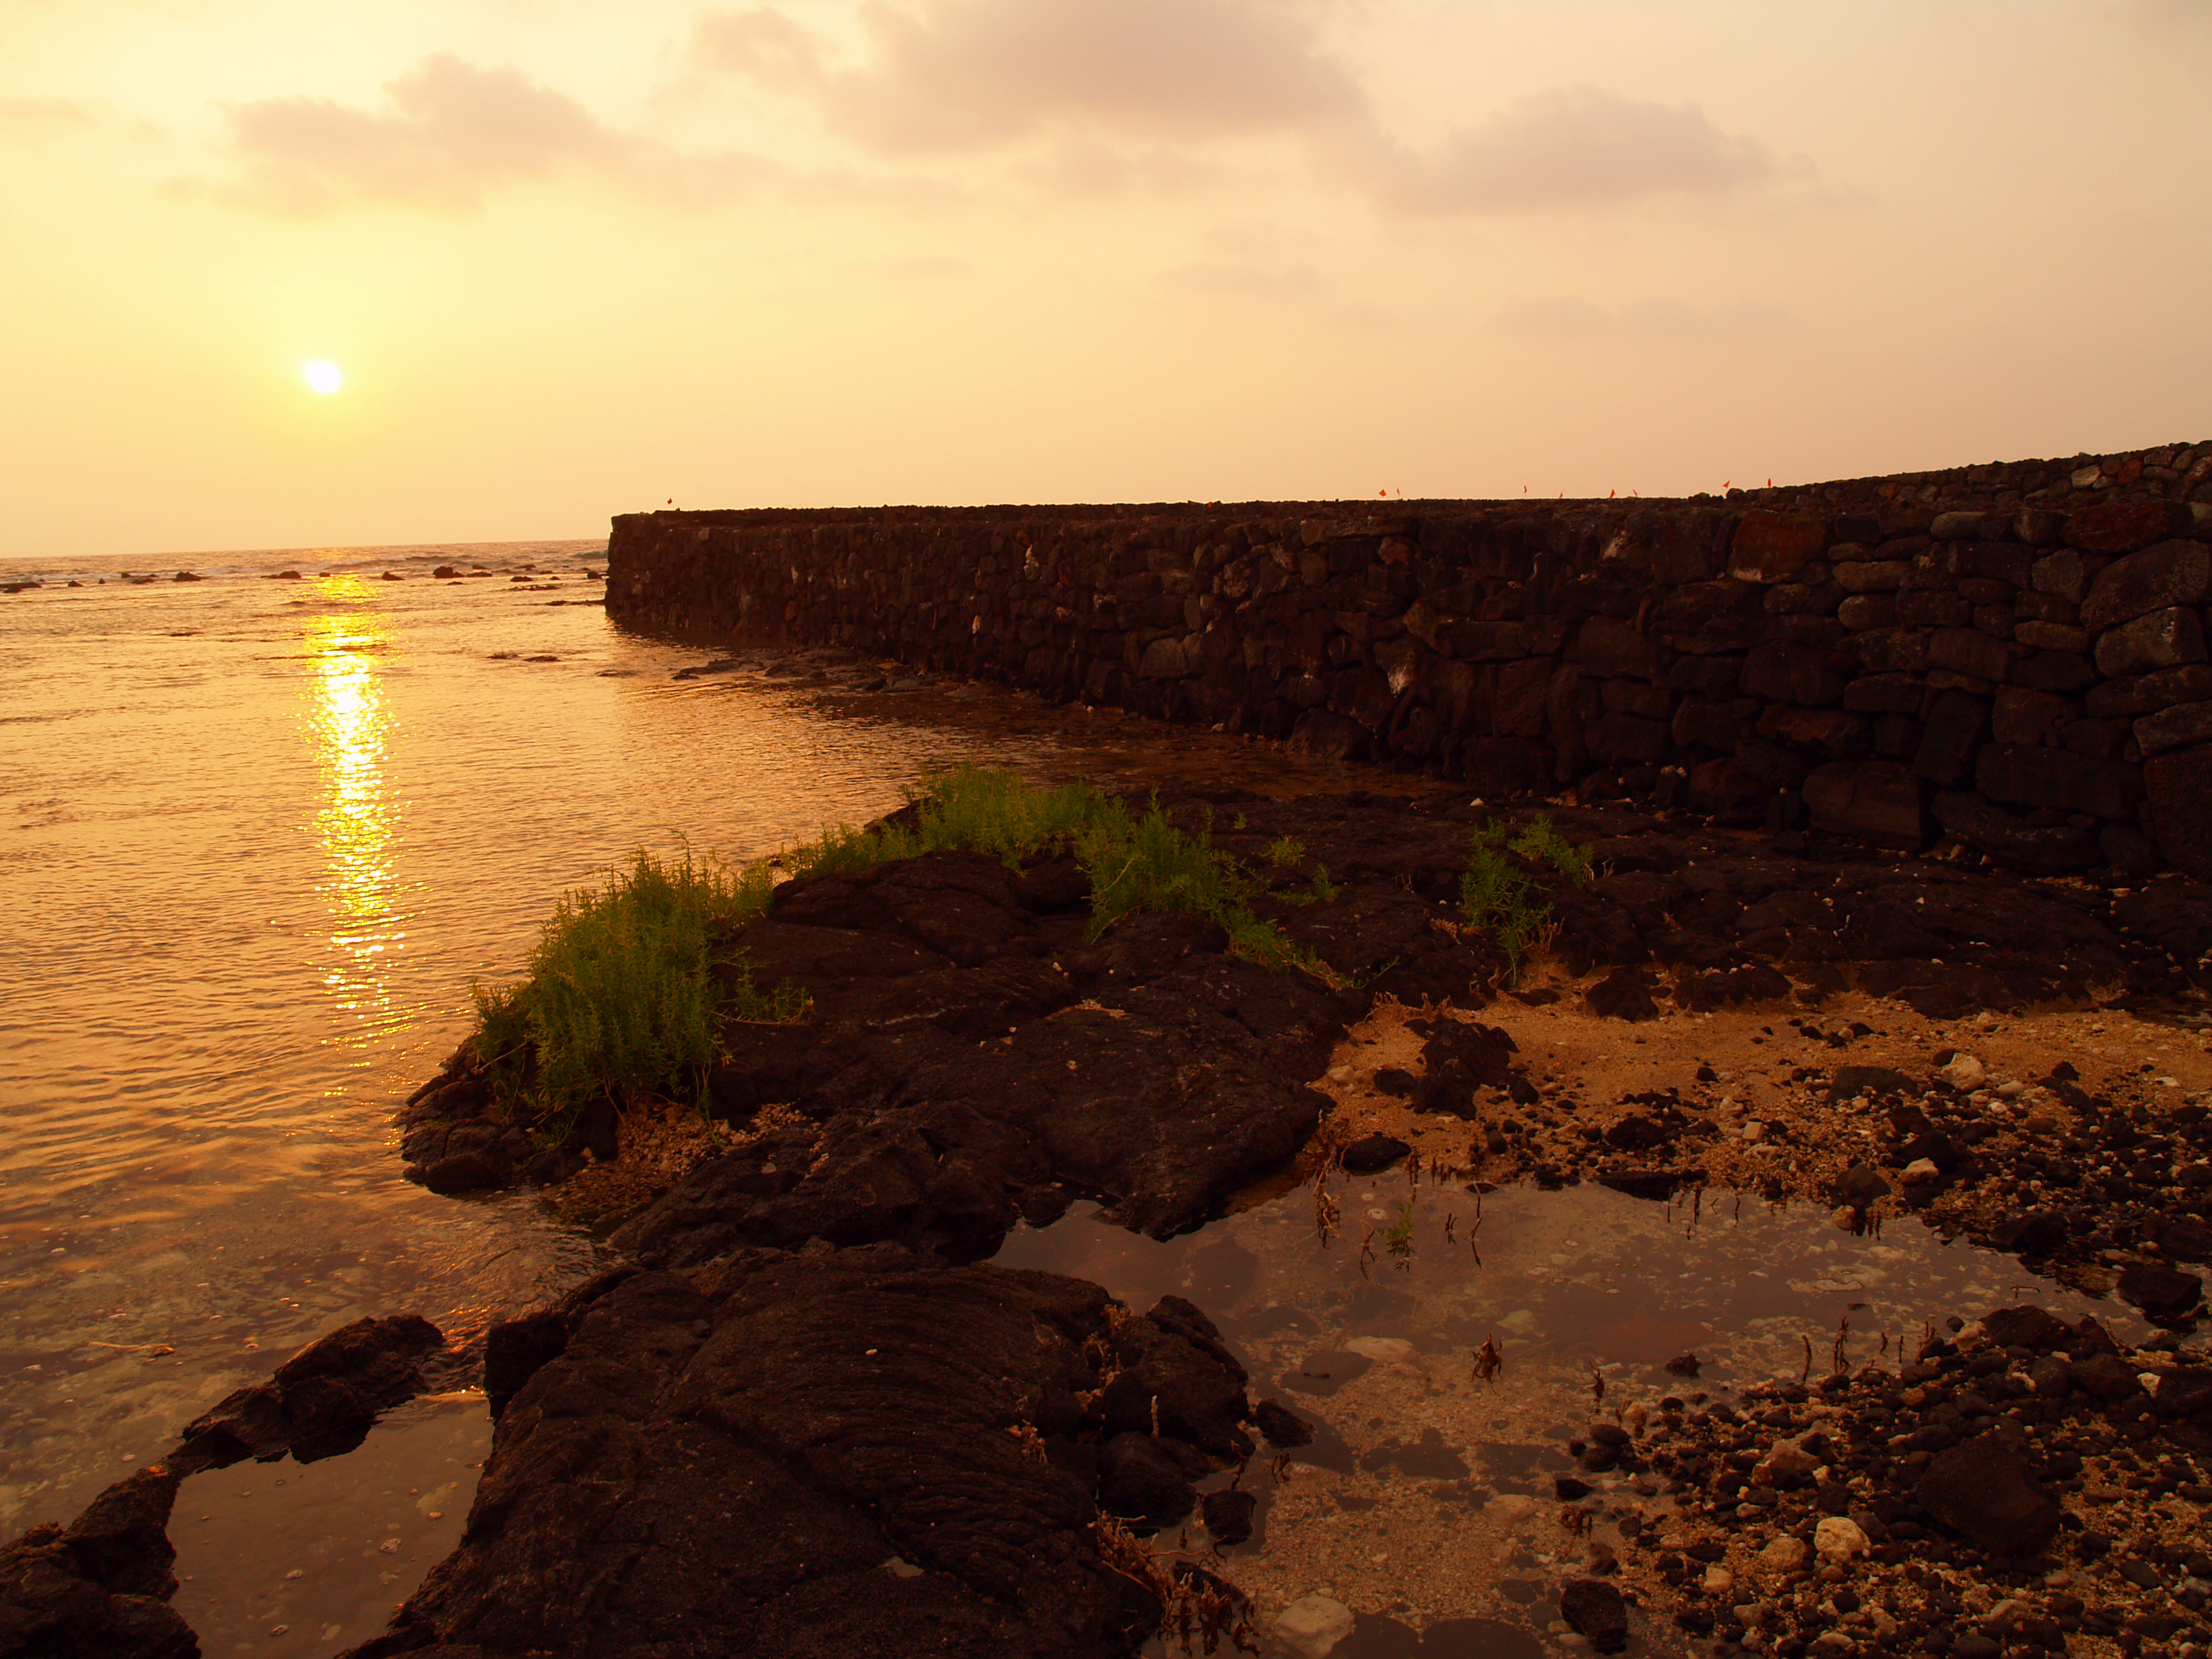 Best scenic drives in hawaii 5 kailua kona to hawaii volcanoes vog tinged sunset at the reconstructed hapaialii heiau keauhou historic district kona hawaii photo by donnie macgowan nvjuhfo Image collections